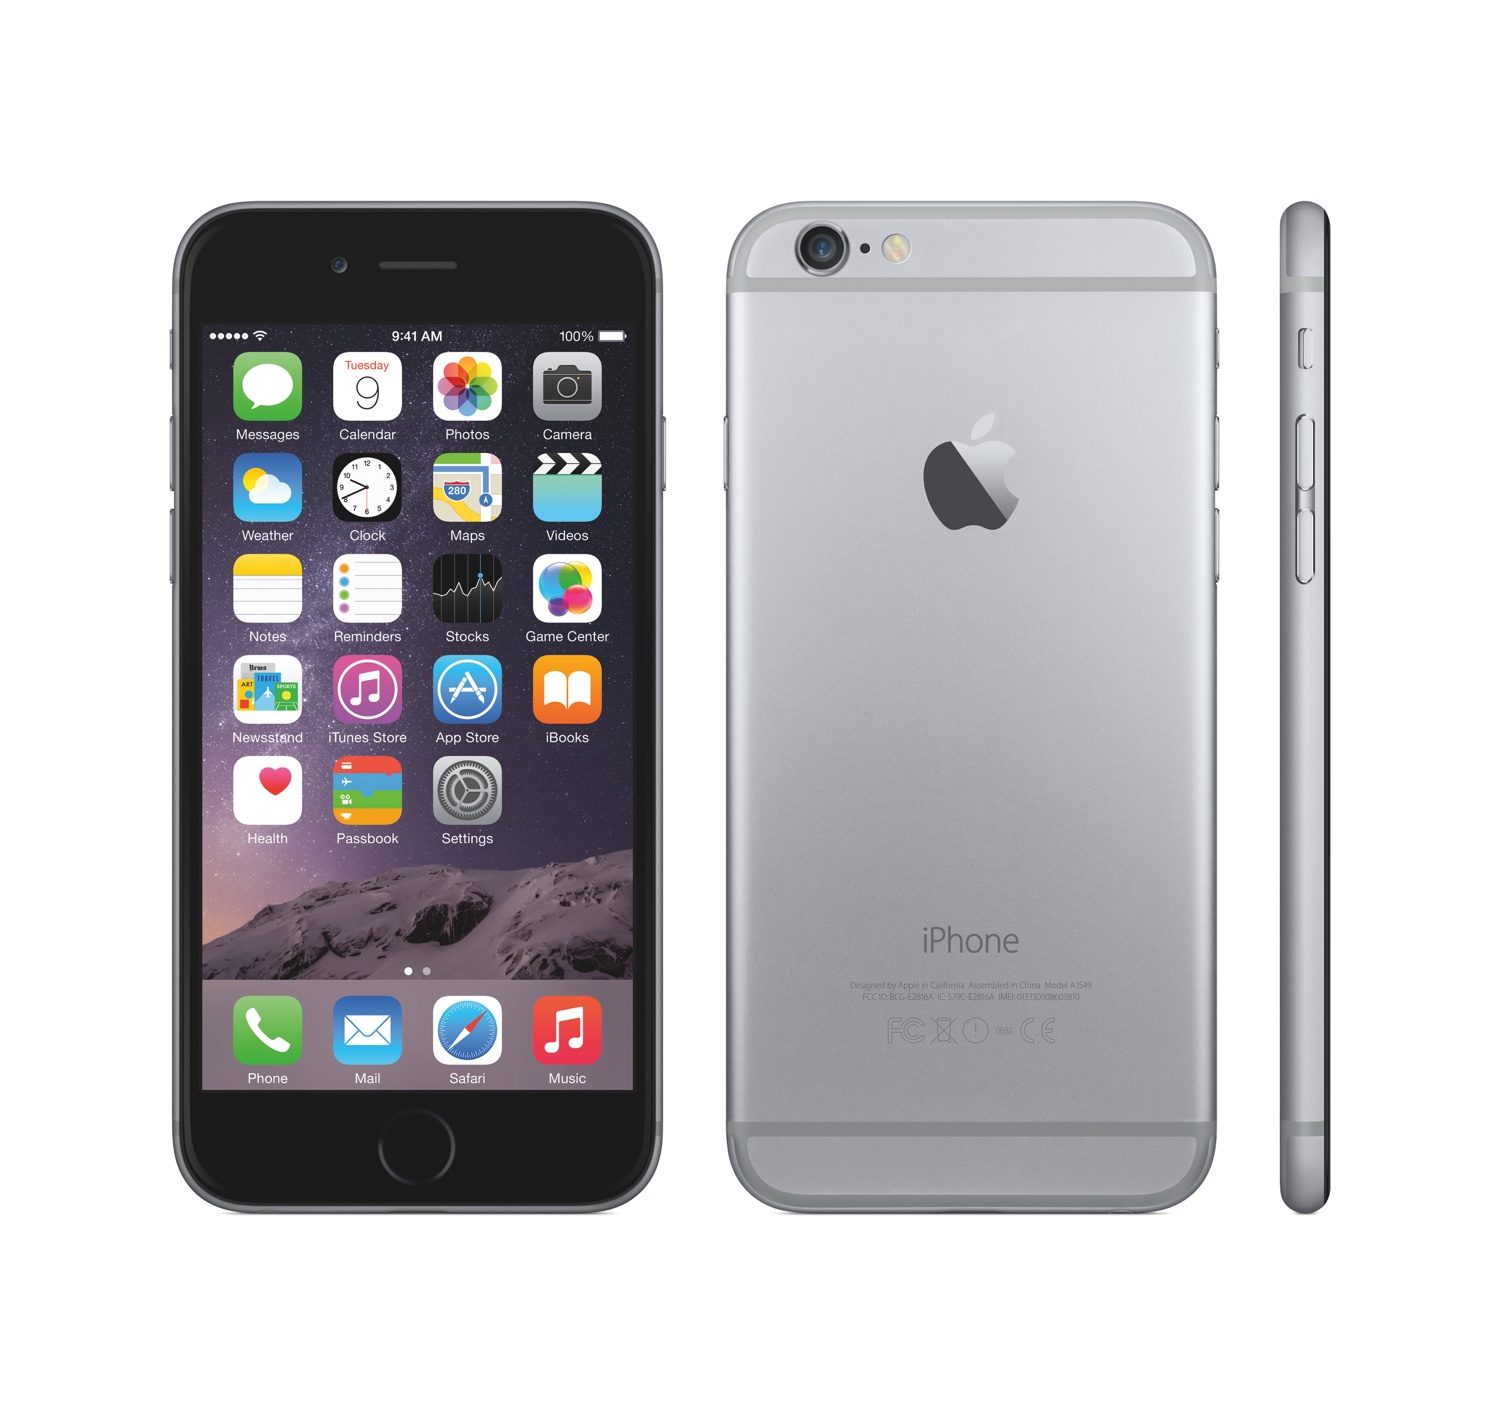 smartphone of year 2014 Iphone 6 plus.jpg